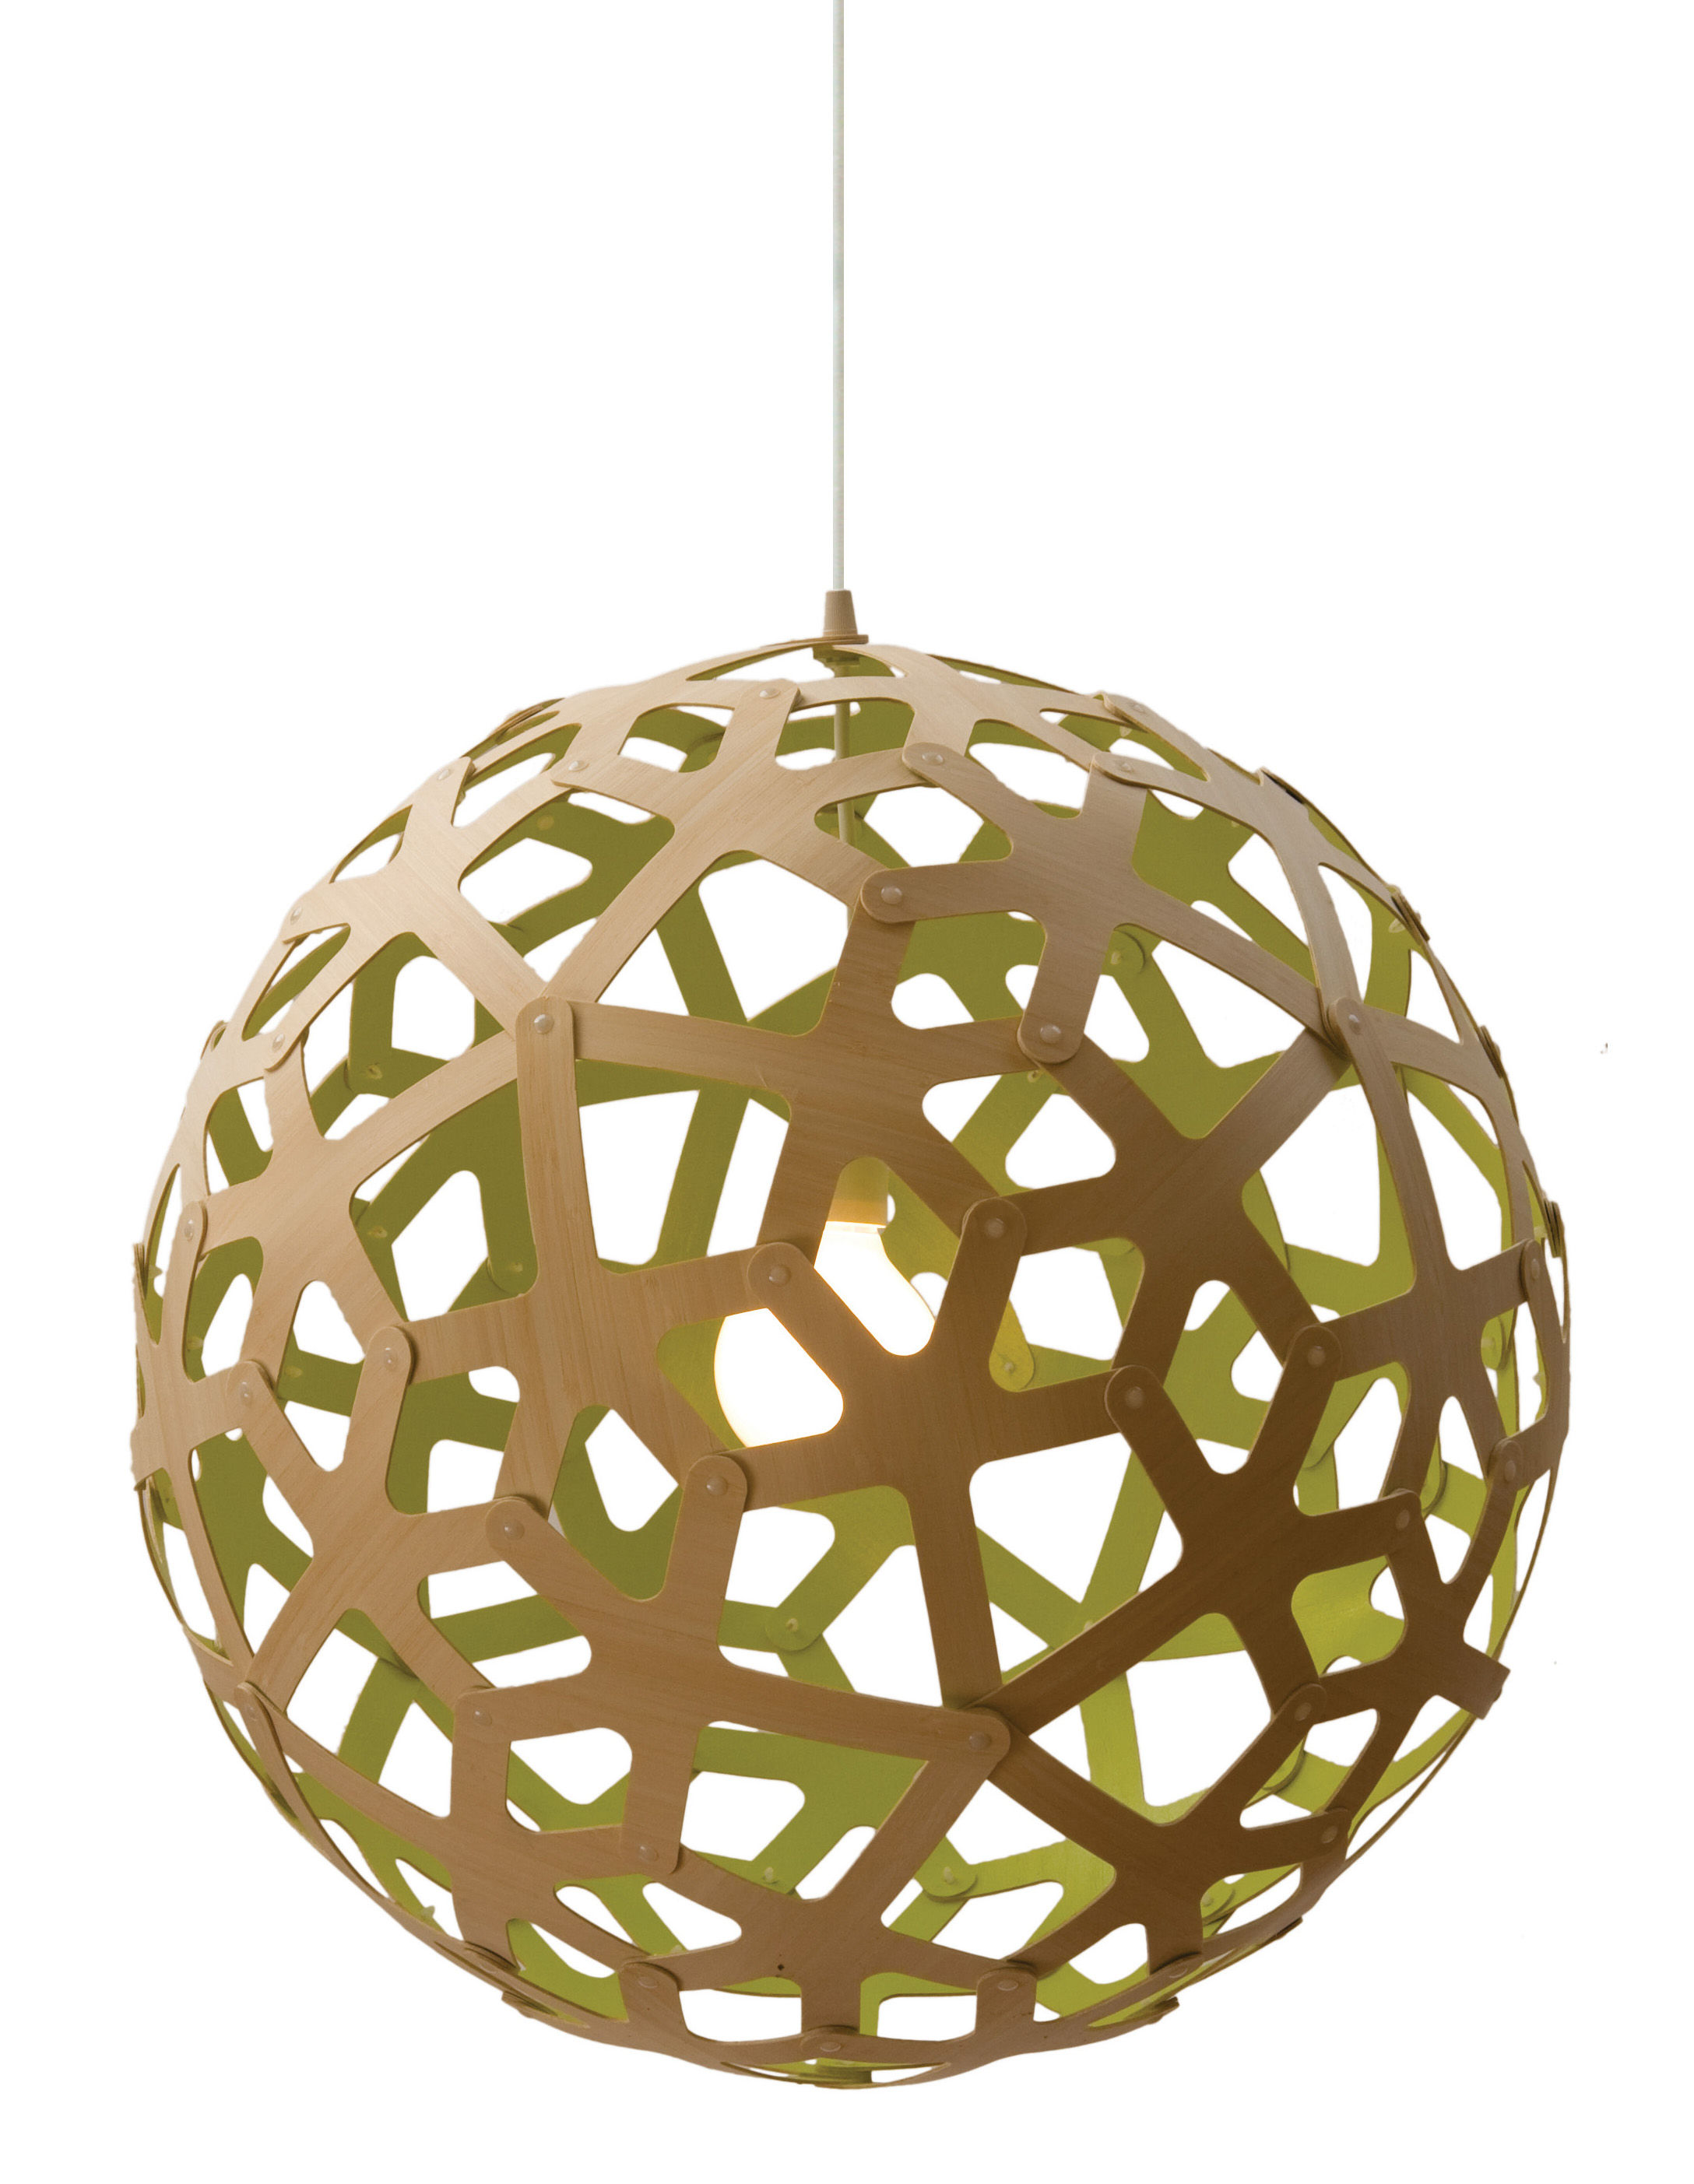 Lighting - Pendant Lighting - Coral Pendant - / Ø 40 cm - Two-coloured by David Trubridge - Lime green / natural wood - Pine